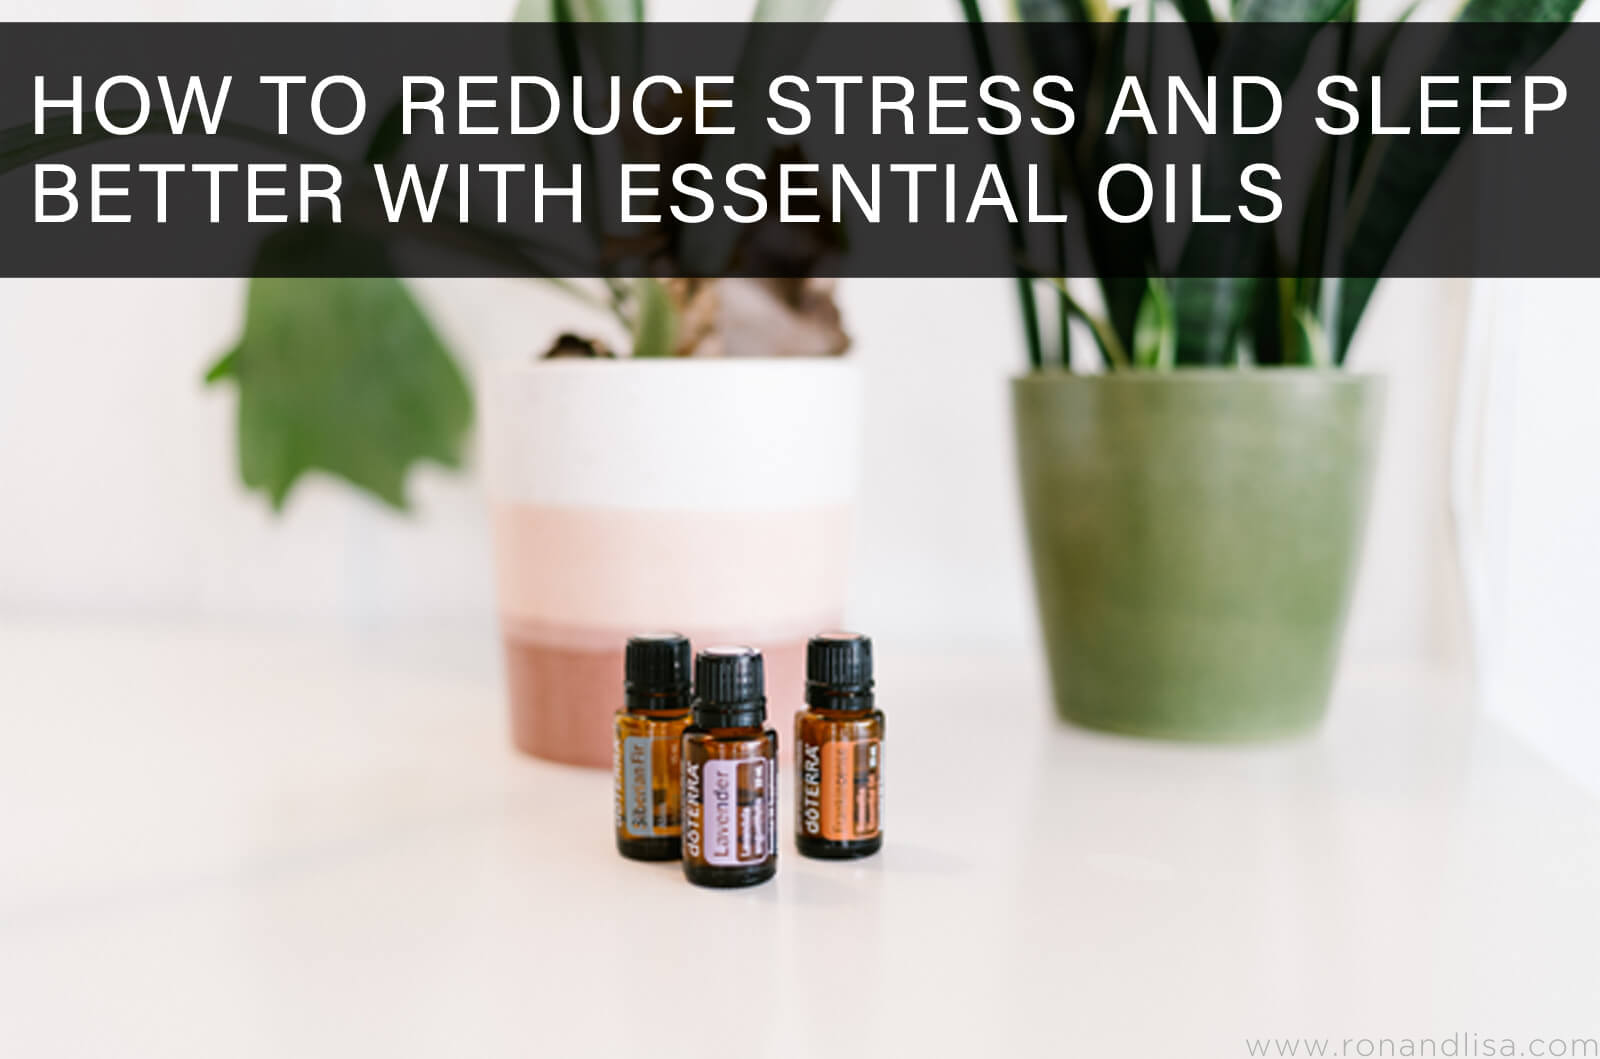 How to Reduce Stress and Sleep Better with Essential Oils